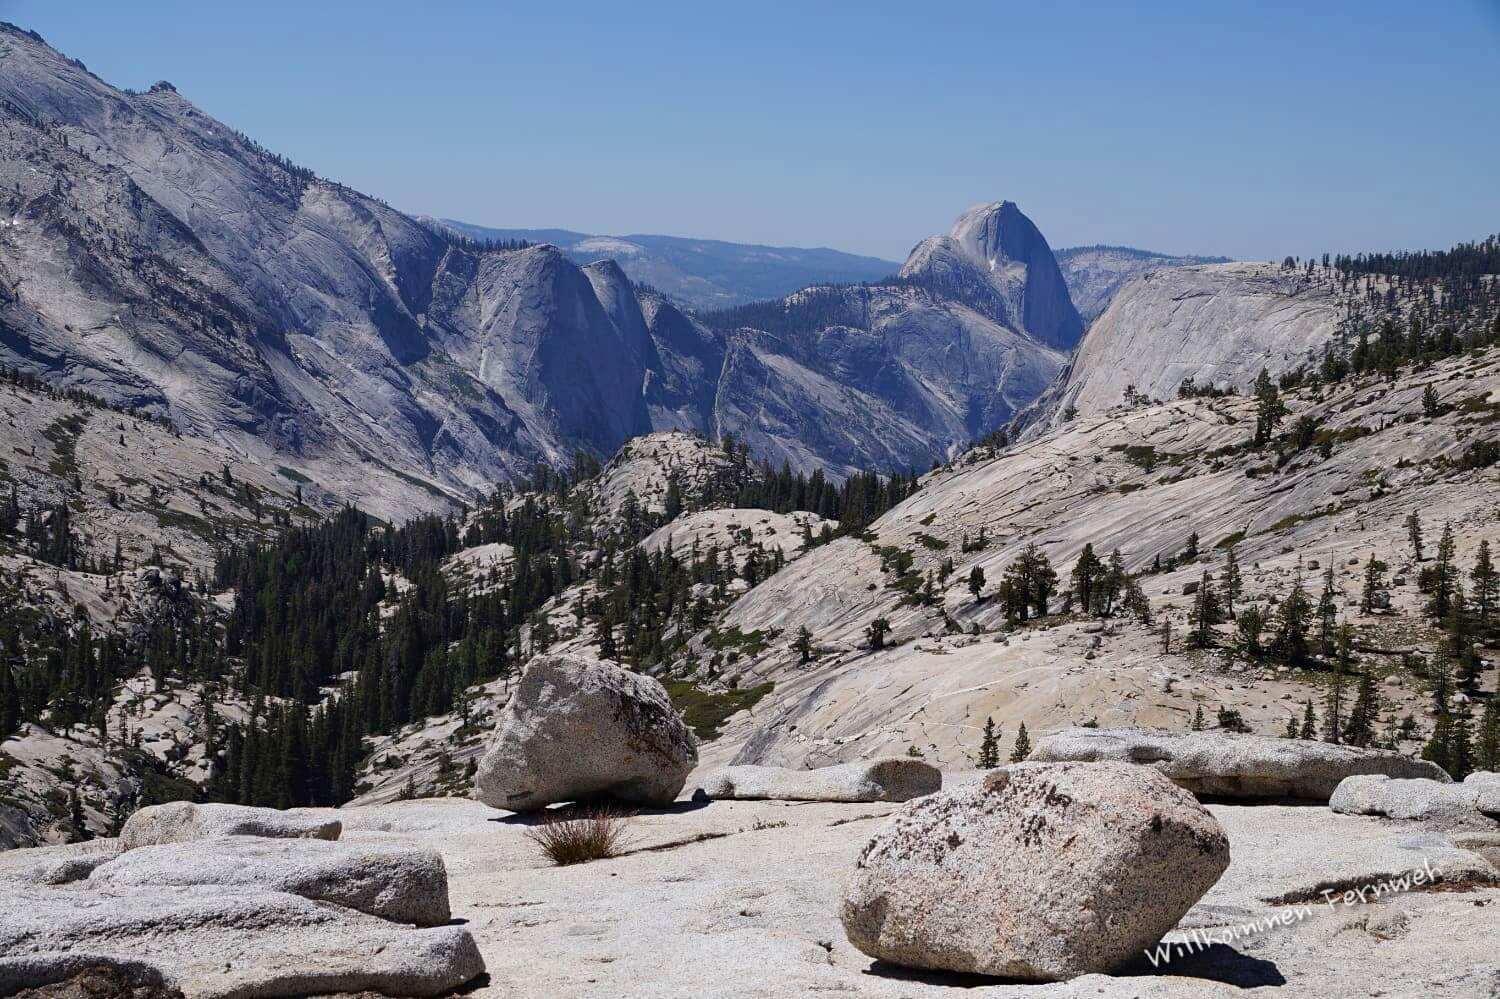 Yosemite High Country: Am Olmsted Point mit Blick auf den Half Dome, Yosemite National Park